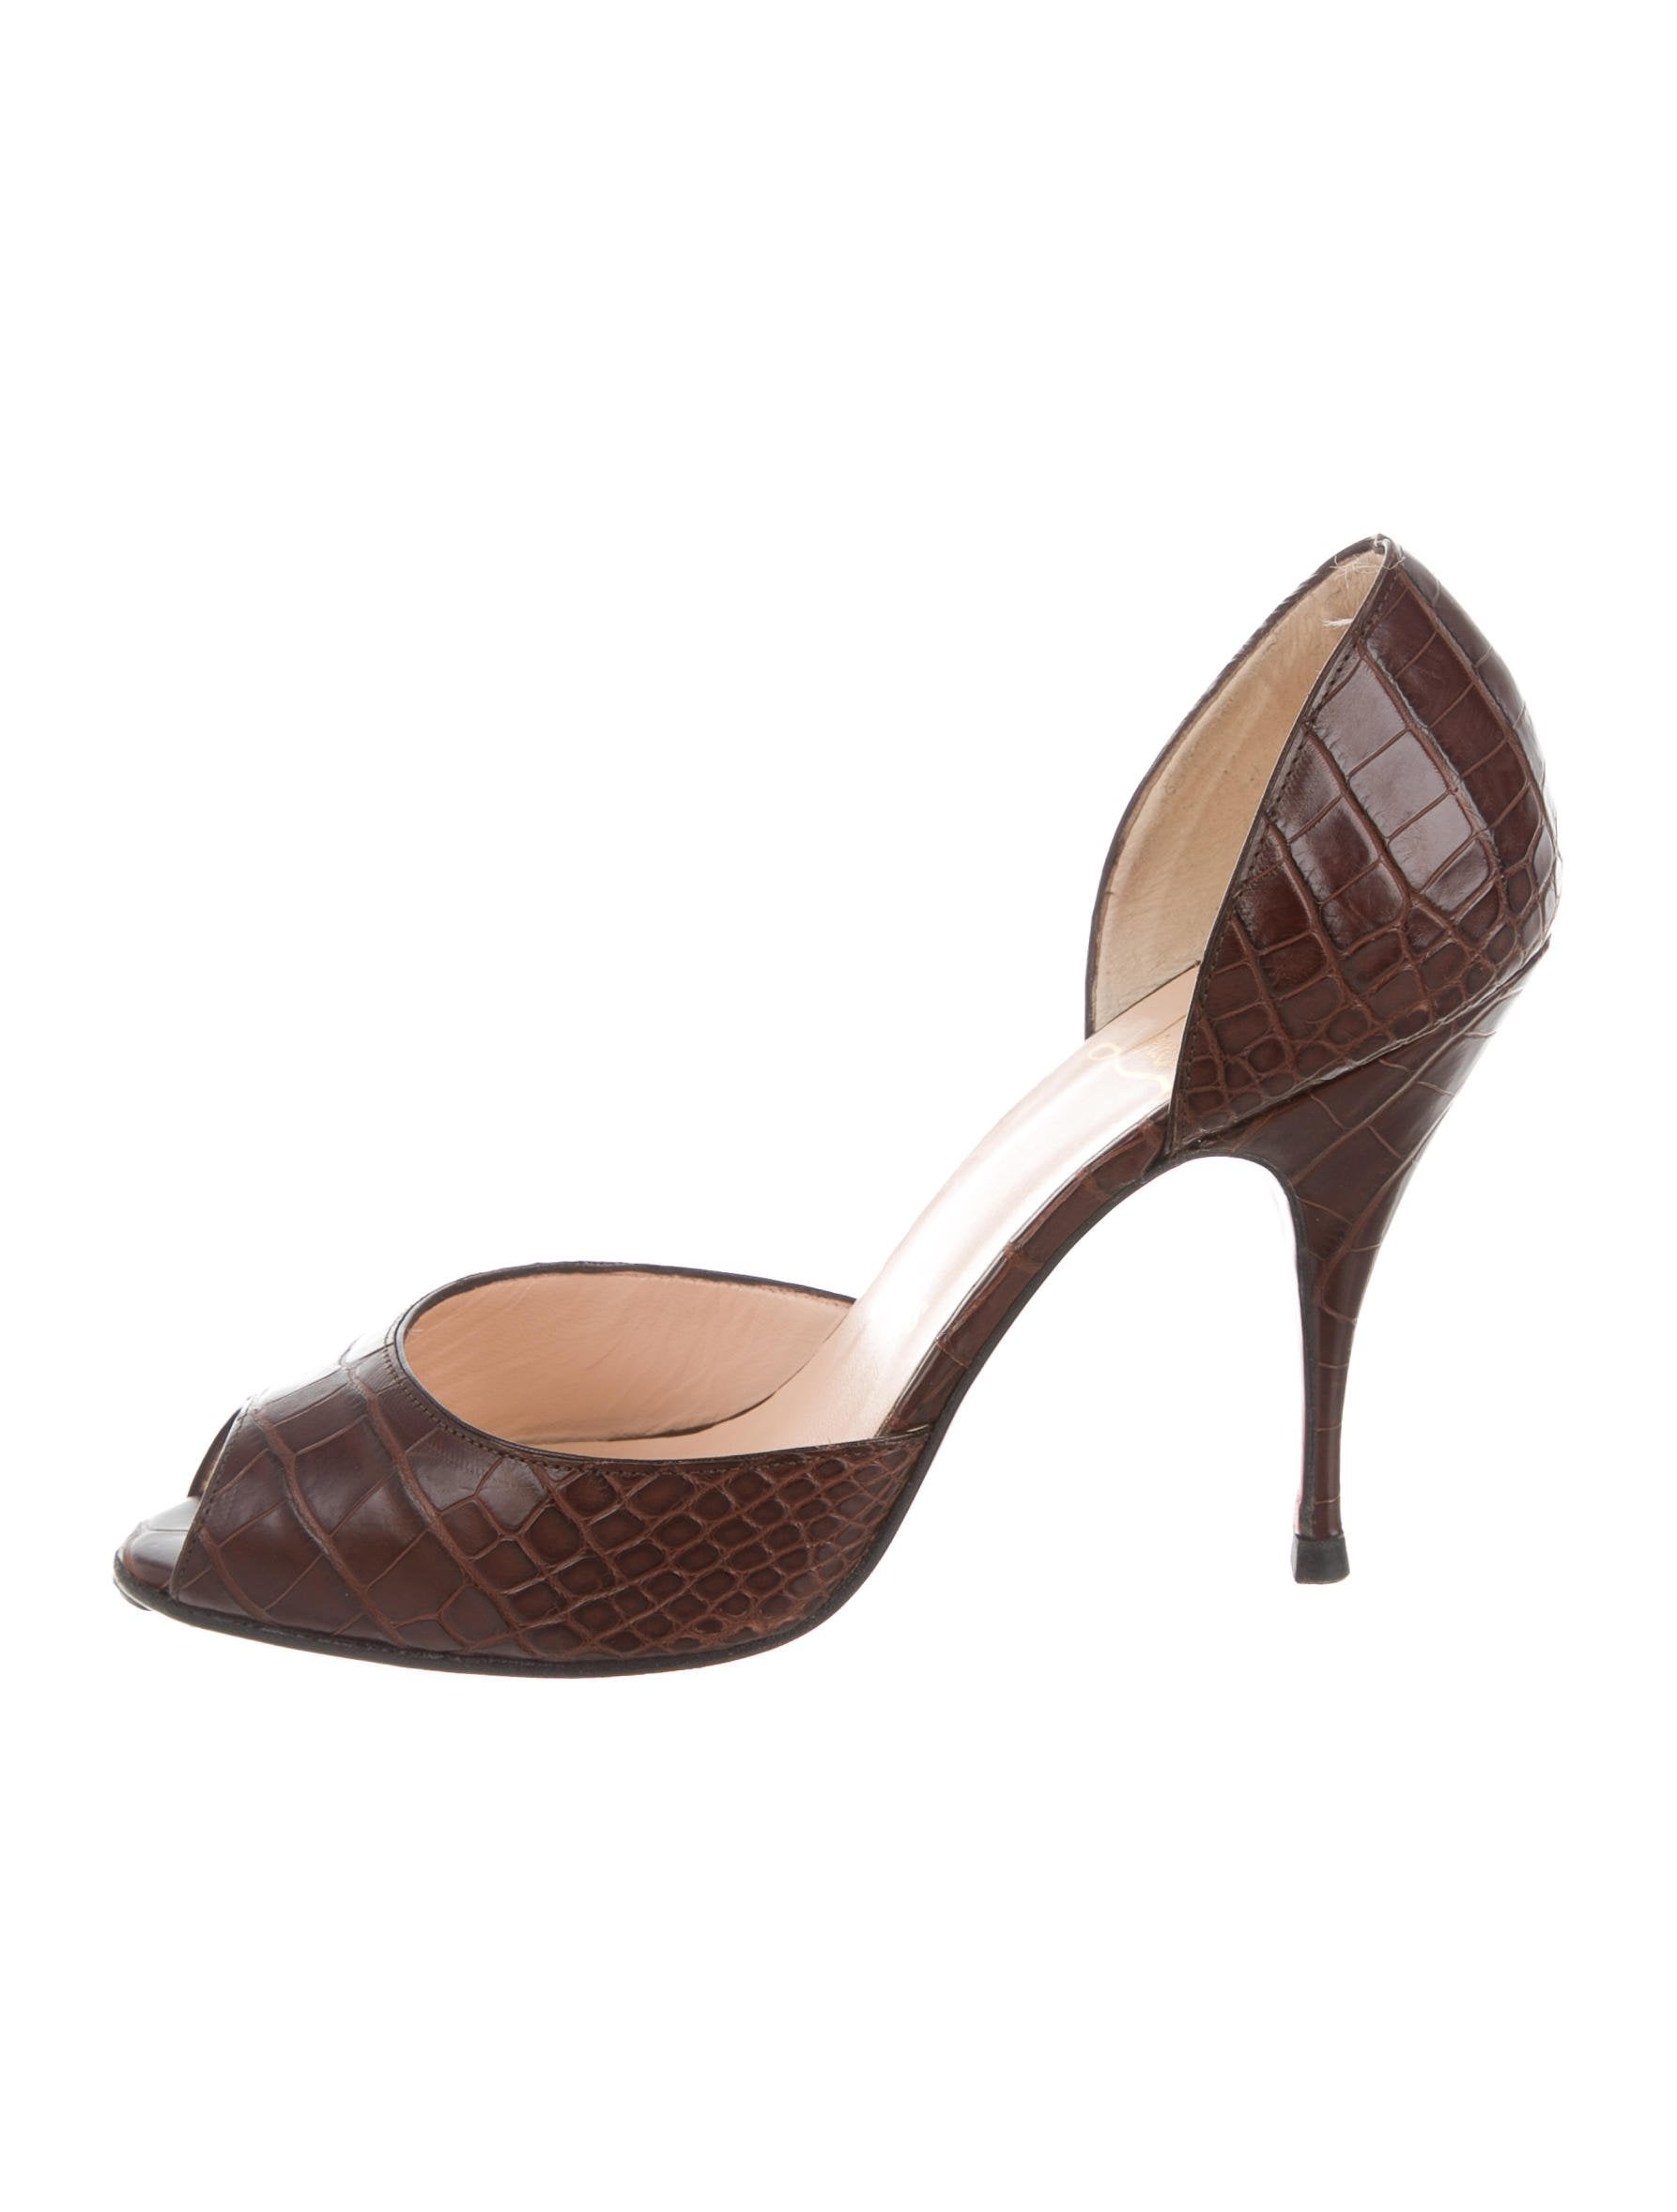 Christian Louboutin Alligator d'Orsay Pumps from china sale online buy cheap ebay clearance for sale wHFcJD